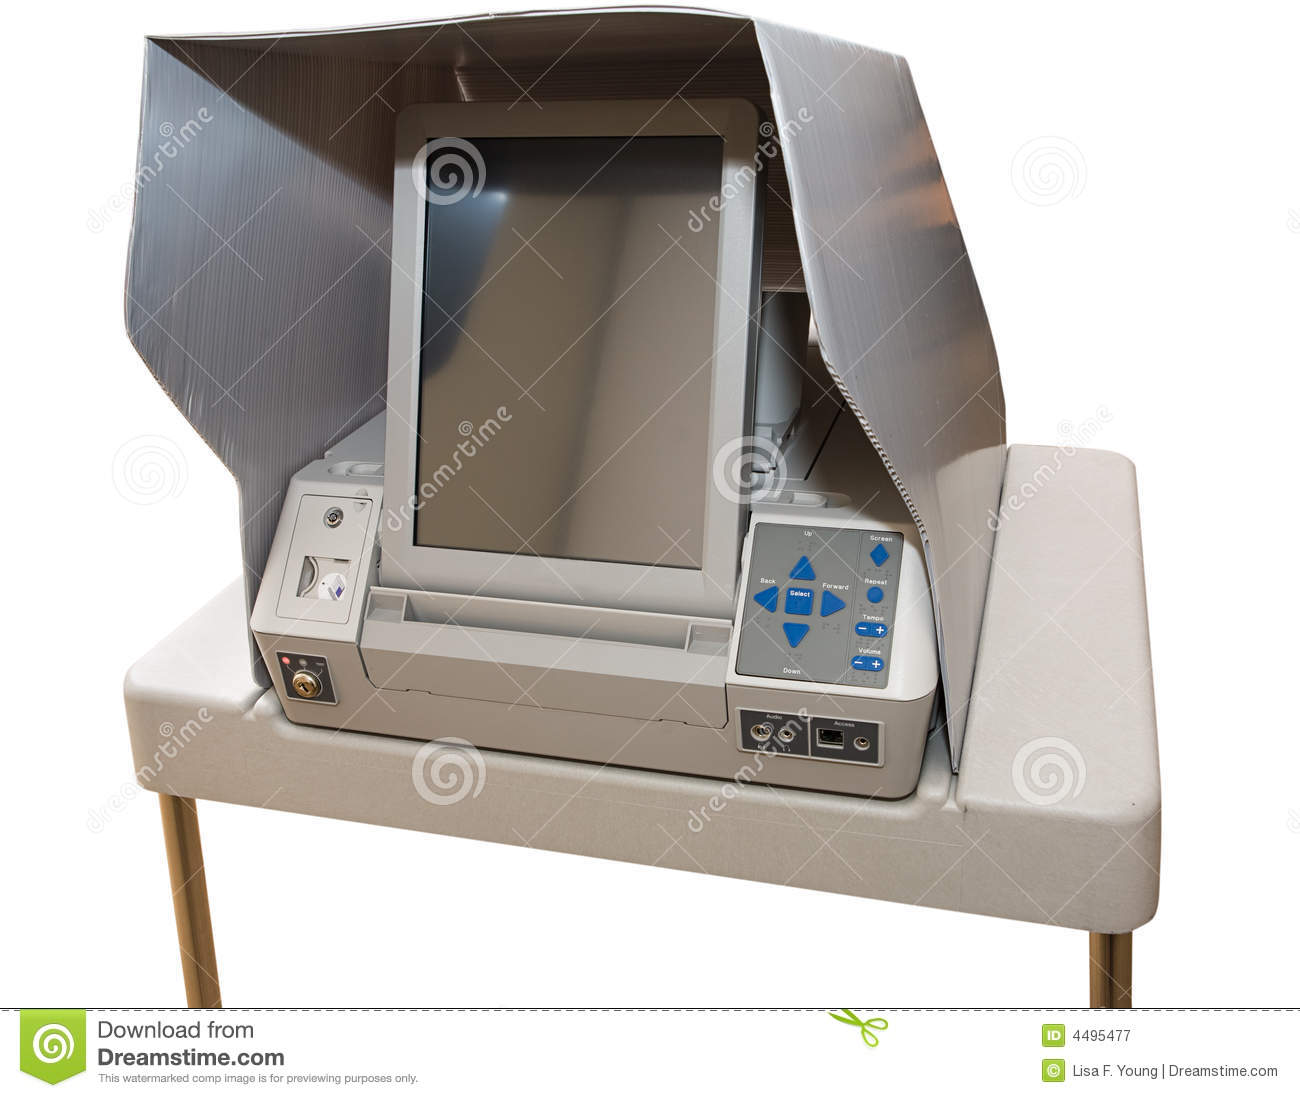 touch screen voting machine